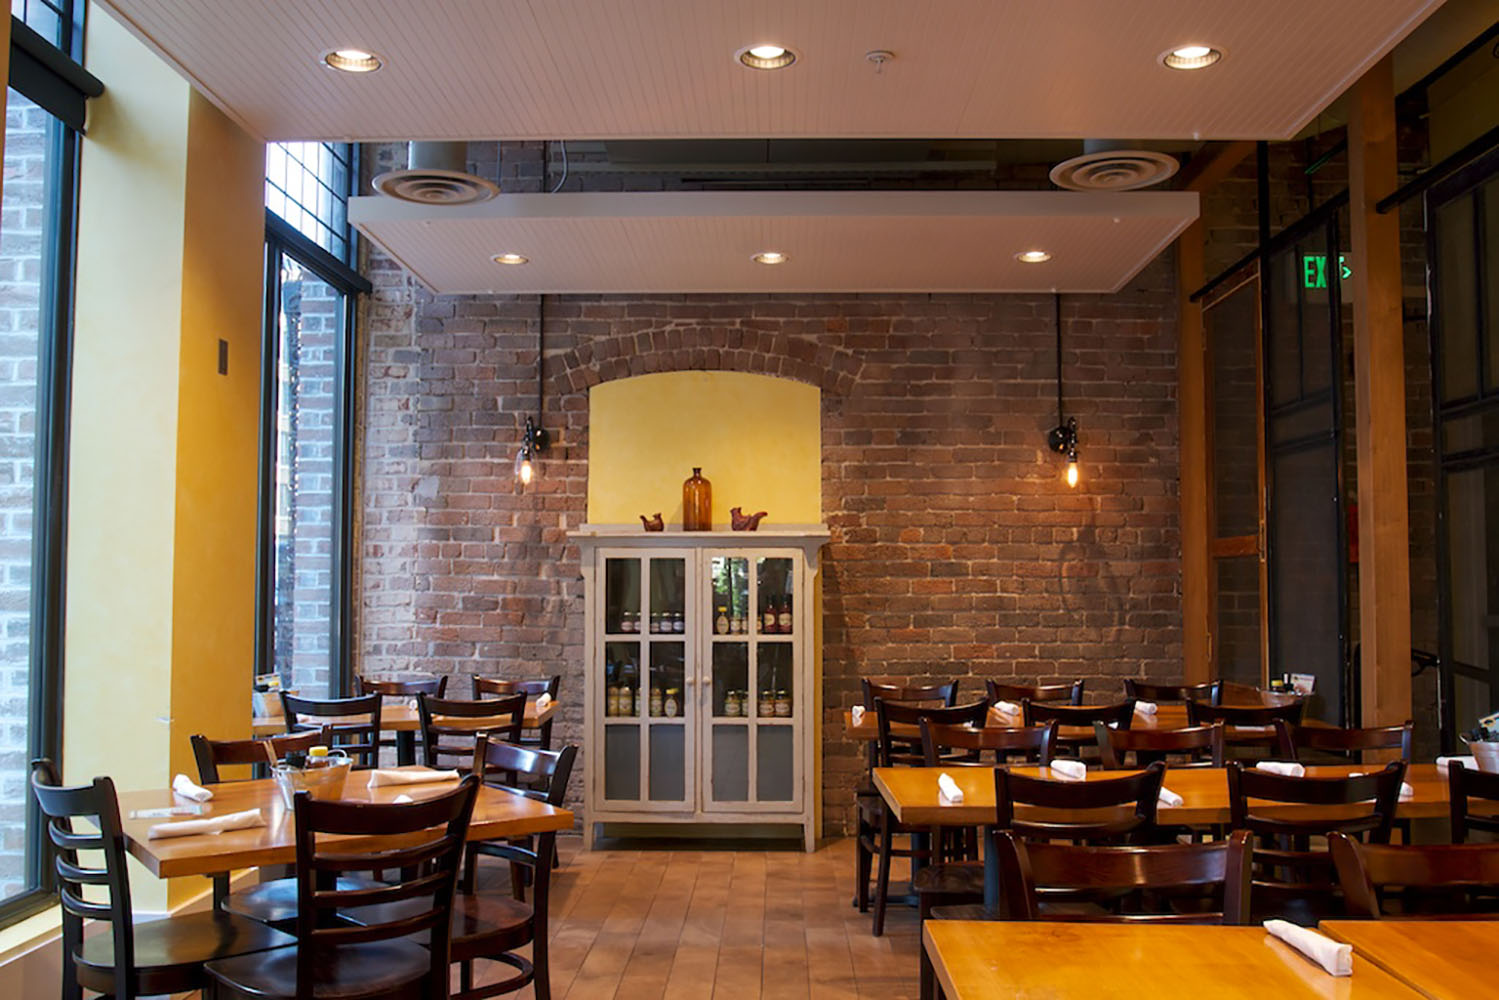 Fresh, scratch-made southern food good for the soul at Tupelo Honey Cafe Knoxville.